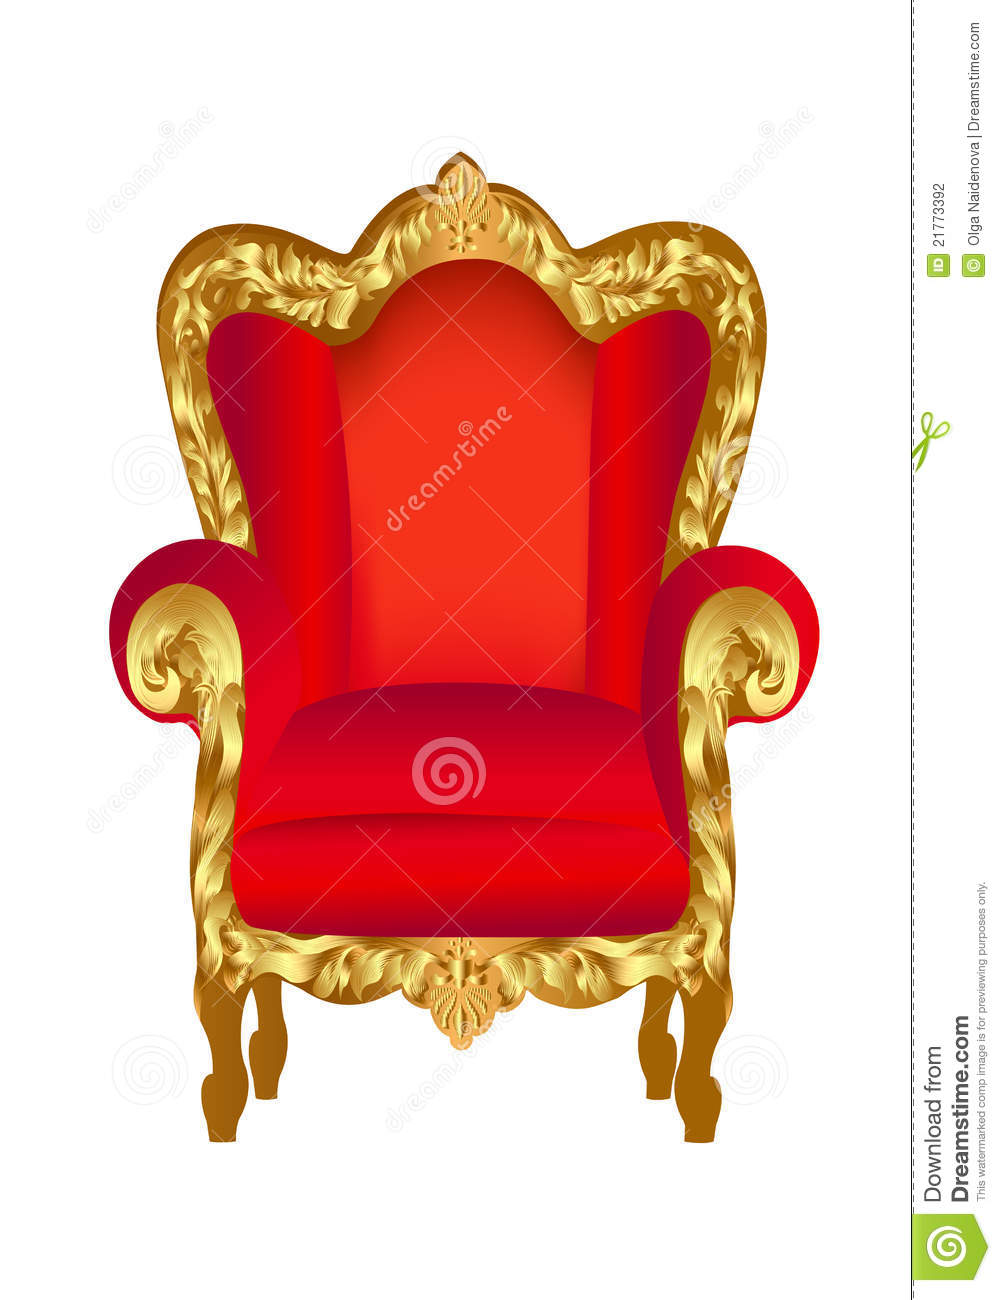 Gold queen chair images galleries for Red with gold